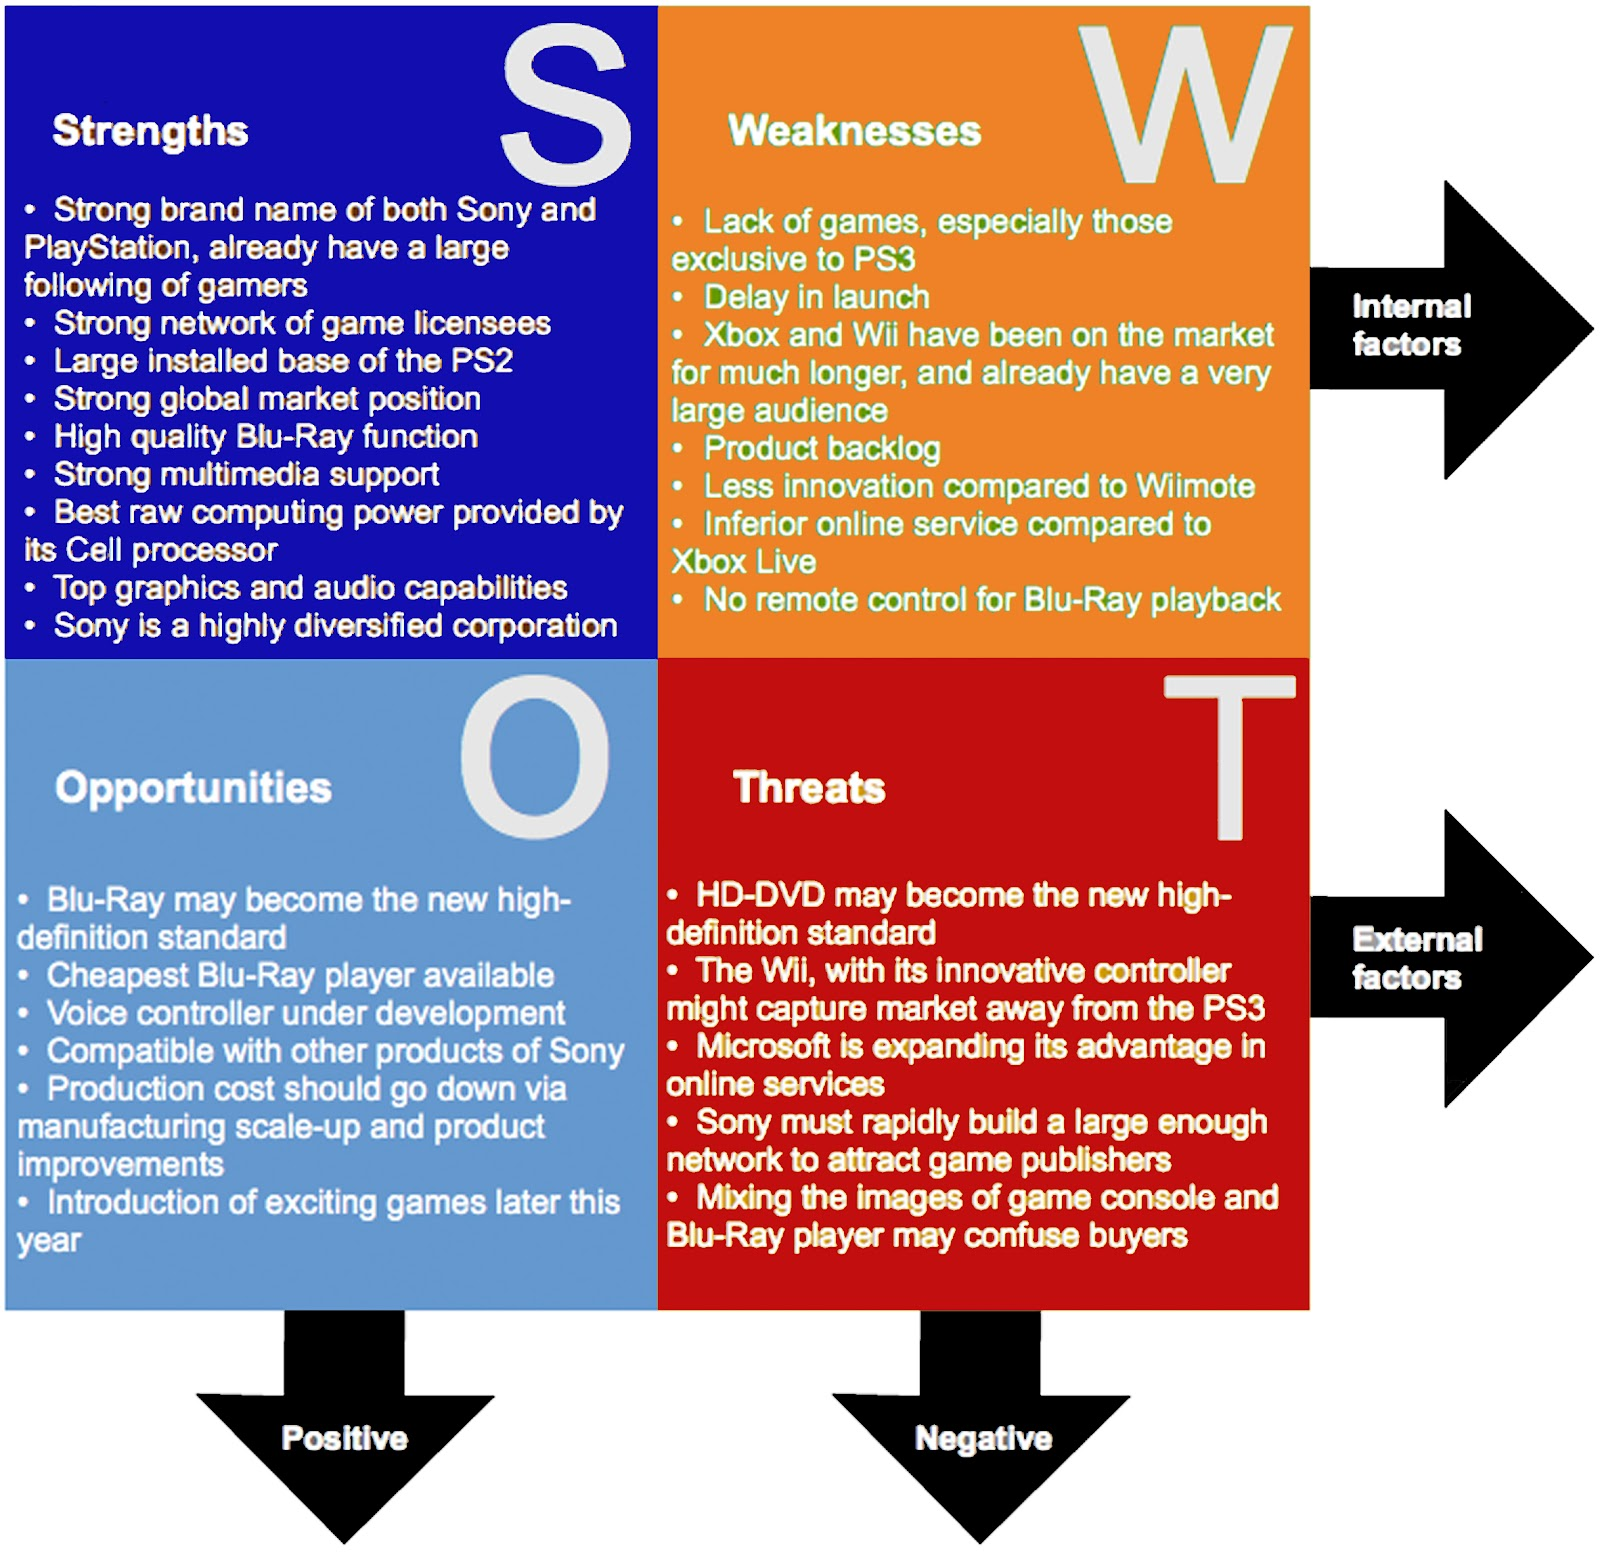 Swot analysis gym essays wallace consider the lobster essay